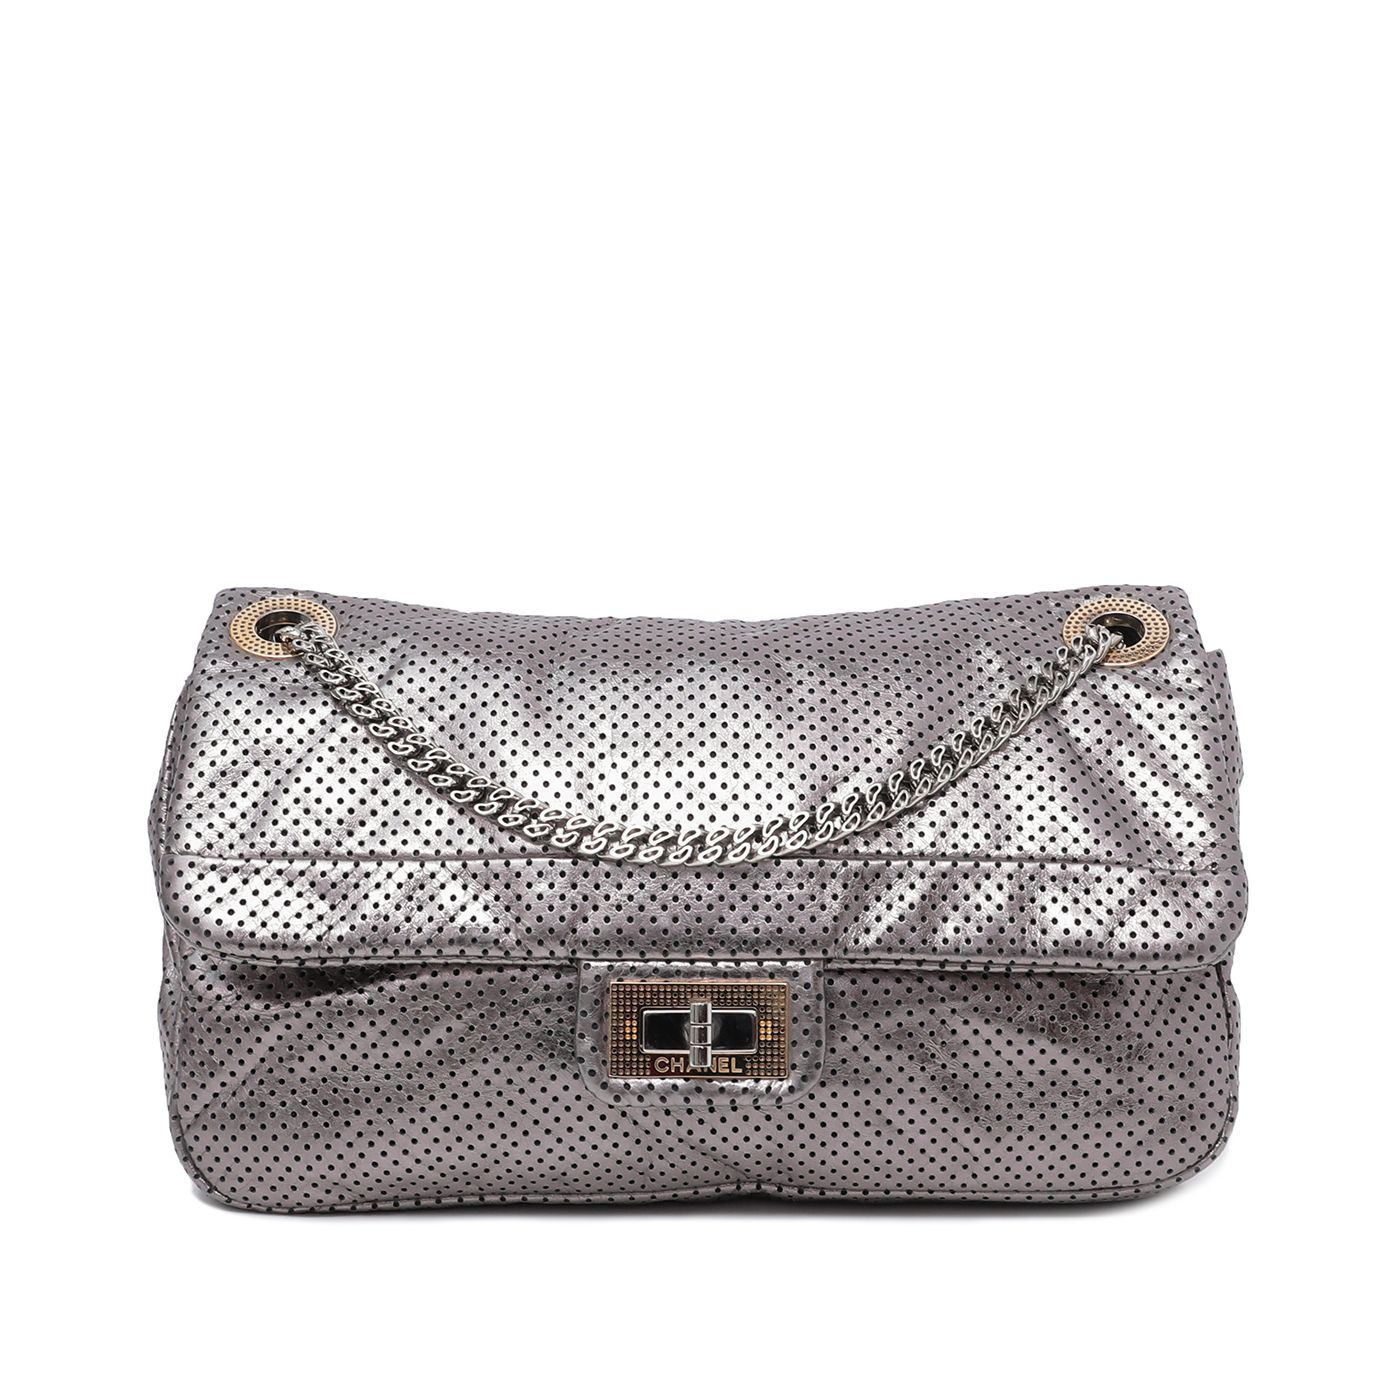 Chanel Metallic Silver Drill Perforated Reissue Bag